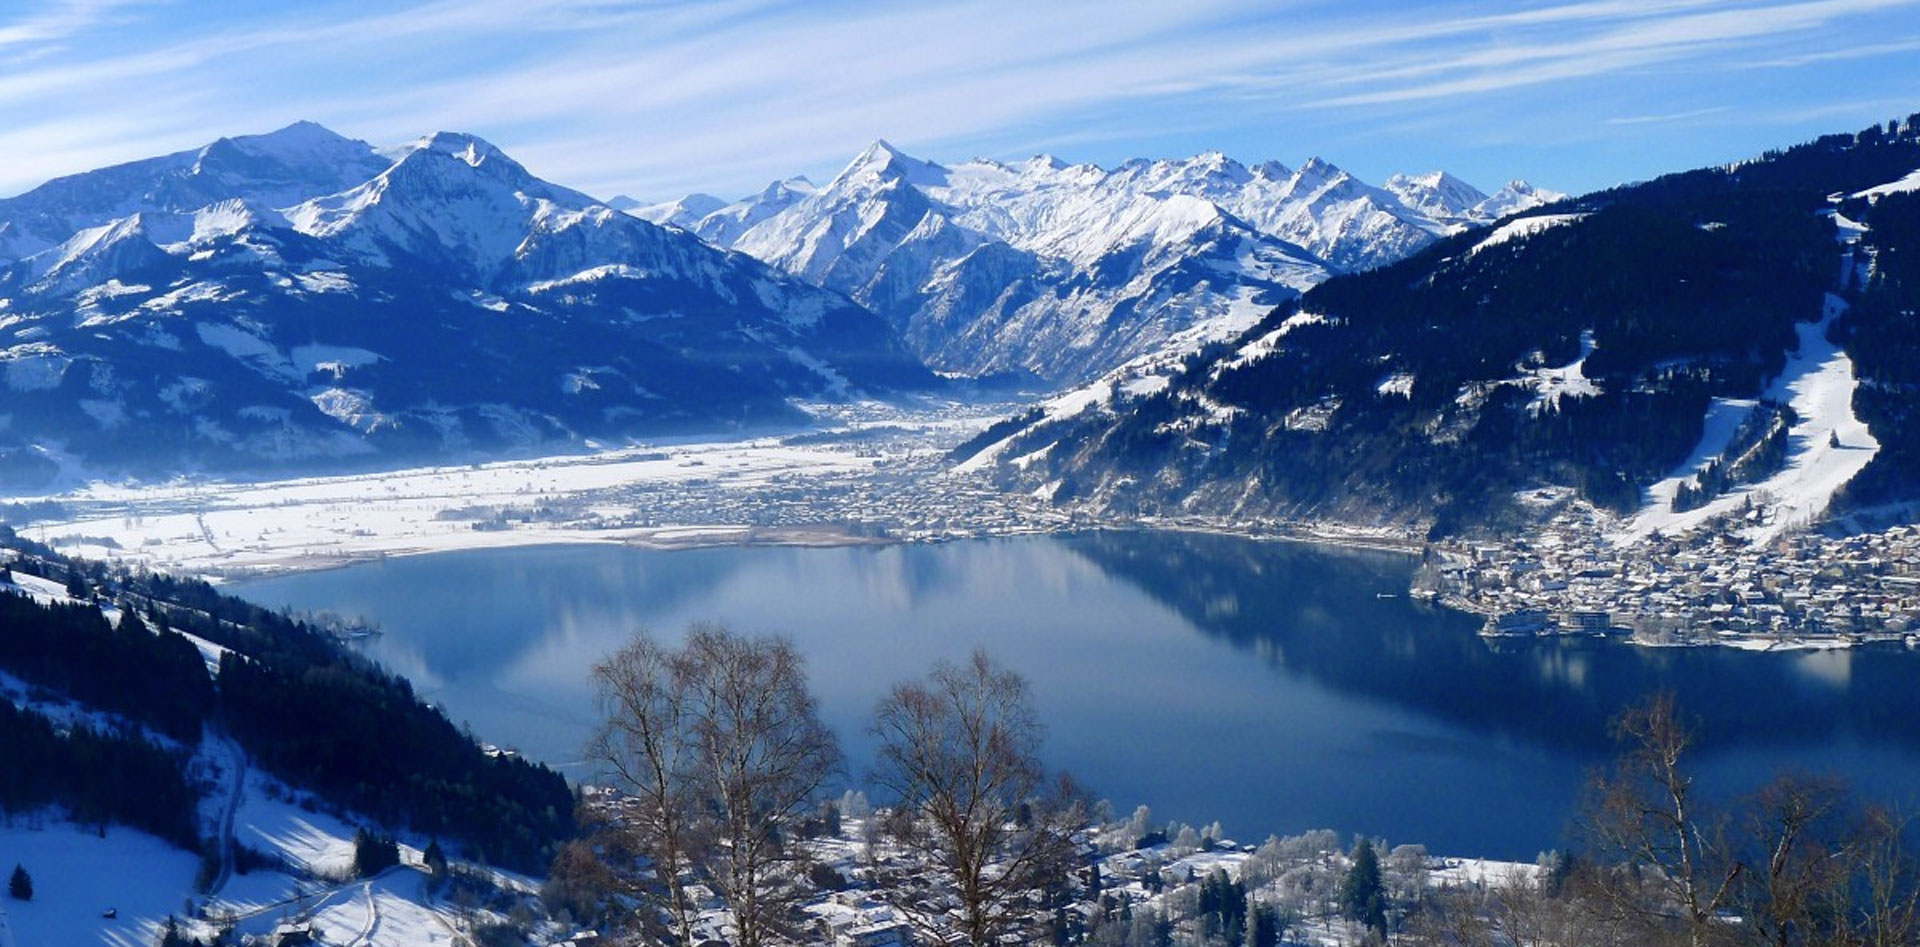 The ski resort of Zell am See, surrounded by mountains on the shore of lake Zell